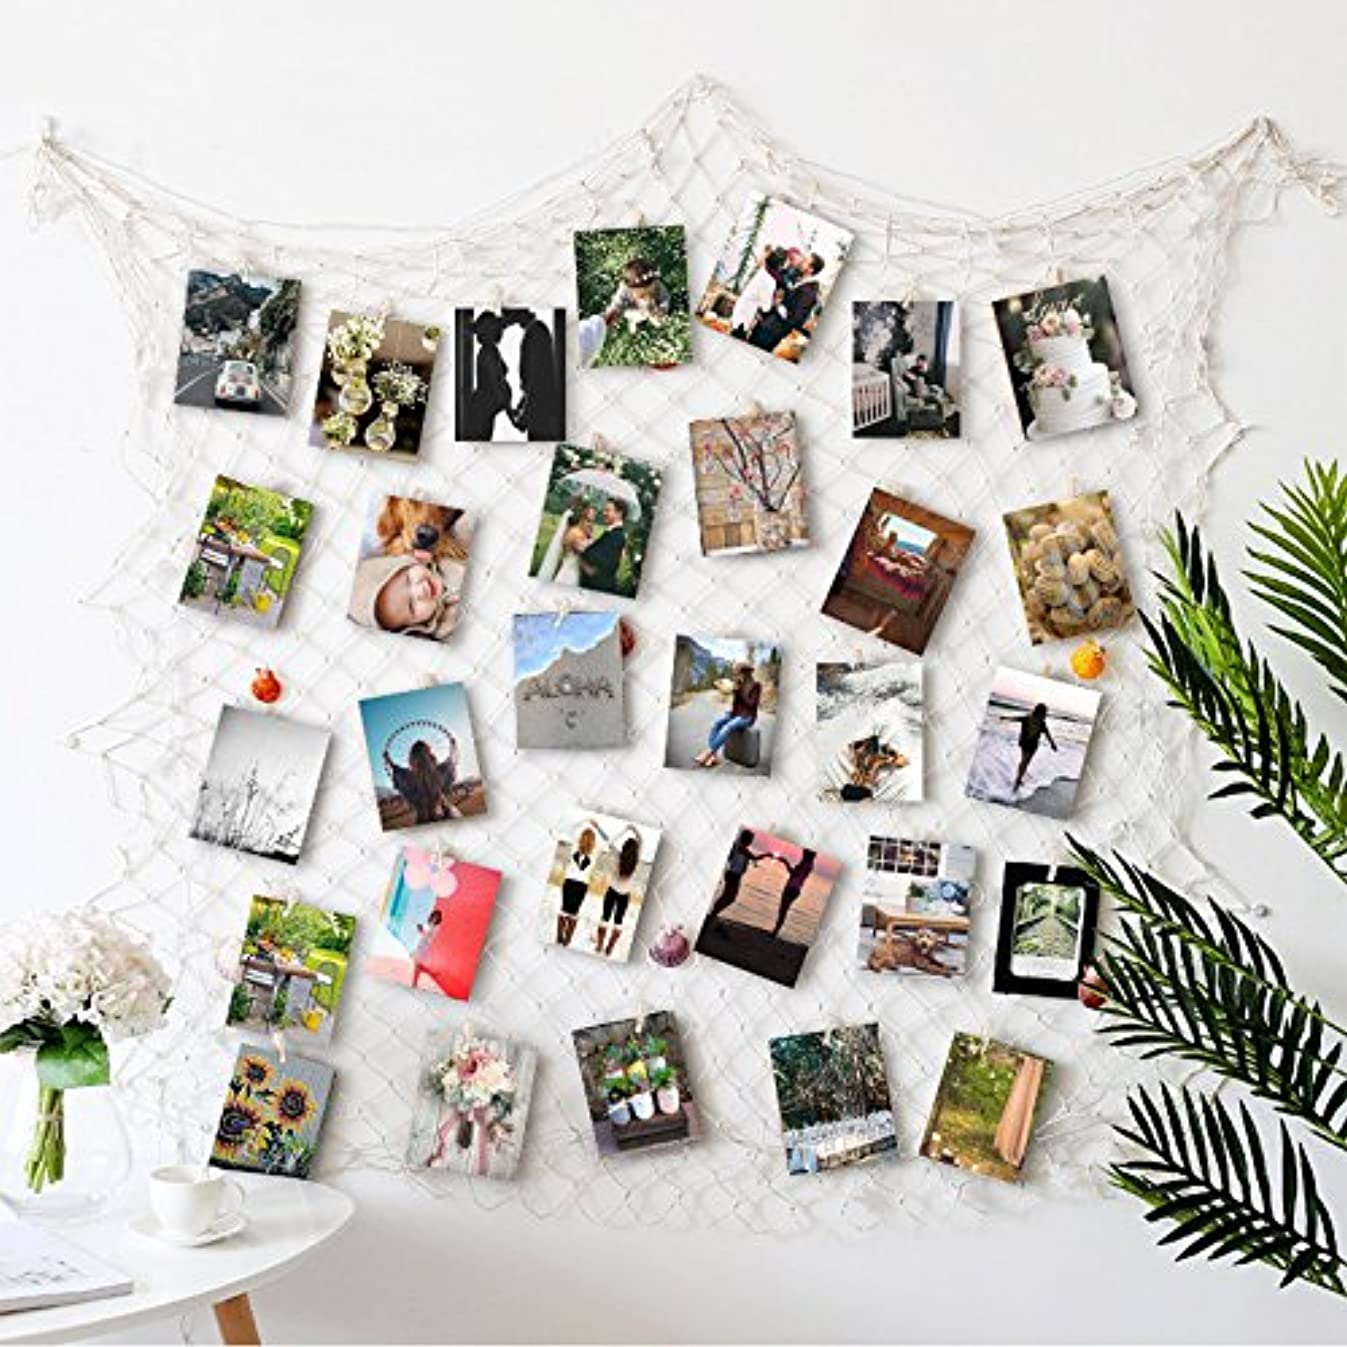 HAYATA ??Photo Hanging Display with 40 Clip Fishing Net Wall Decor - Picture Frames & Prints Multi Photos Organizer & Collage Artworks - Nautical Decorative Dorm Bedroom Christmas Decorations